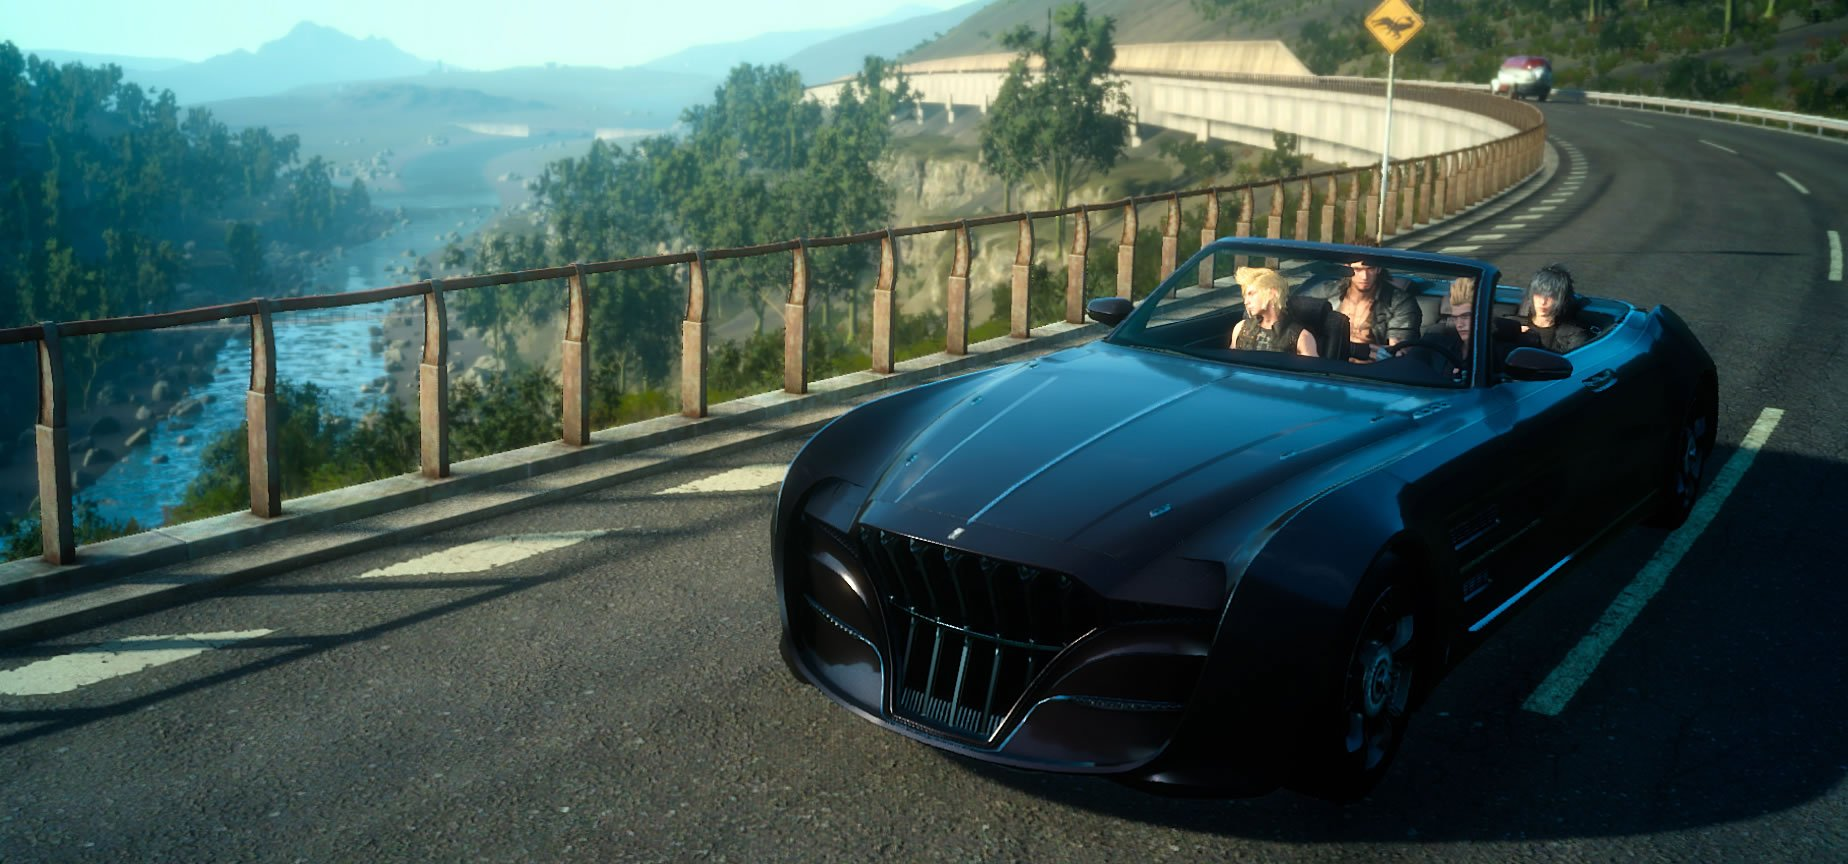 Final Fantasy XV's off-road Regalia and Episode Prompto out by the end of June screenshot